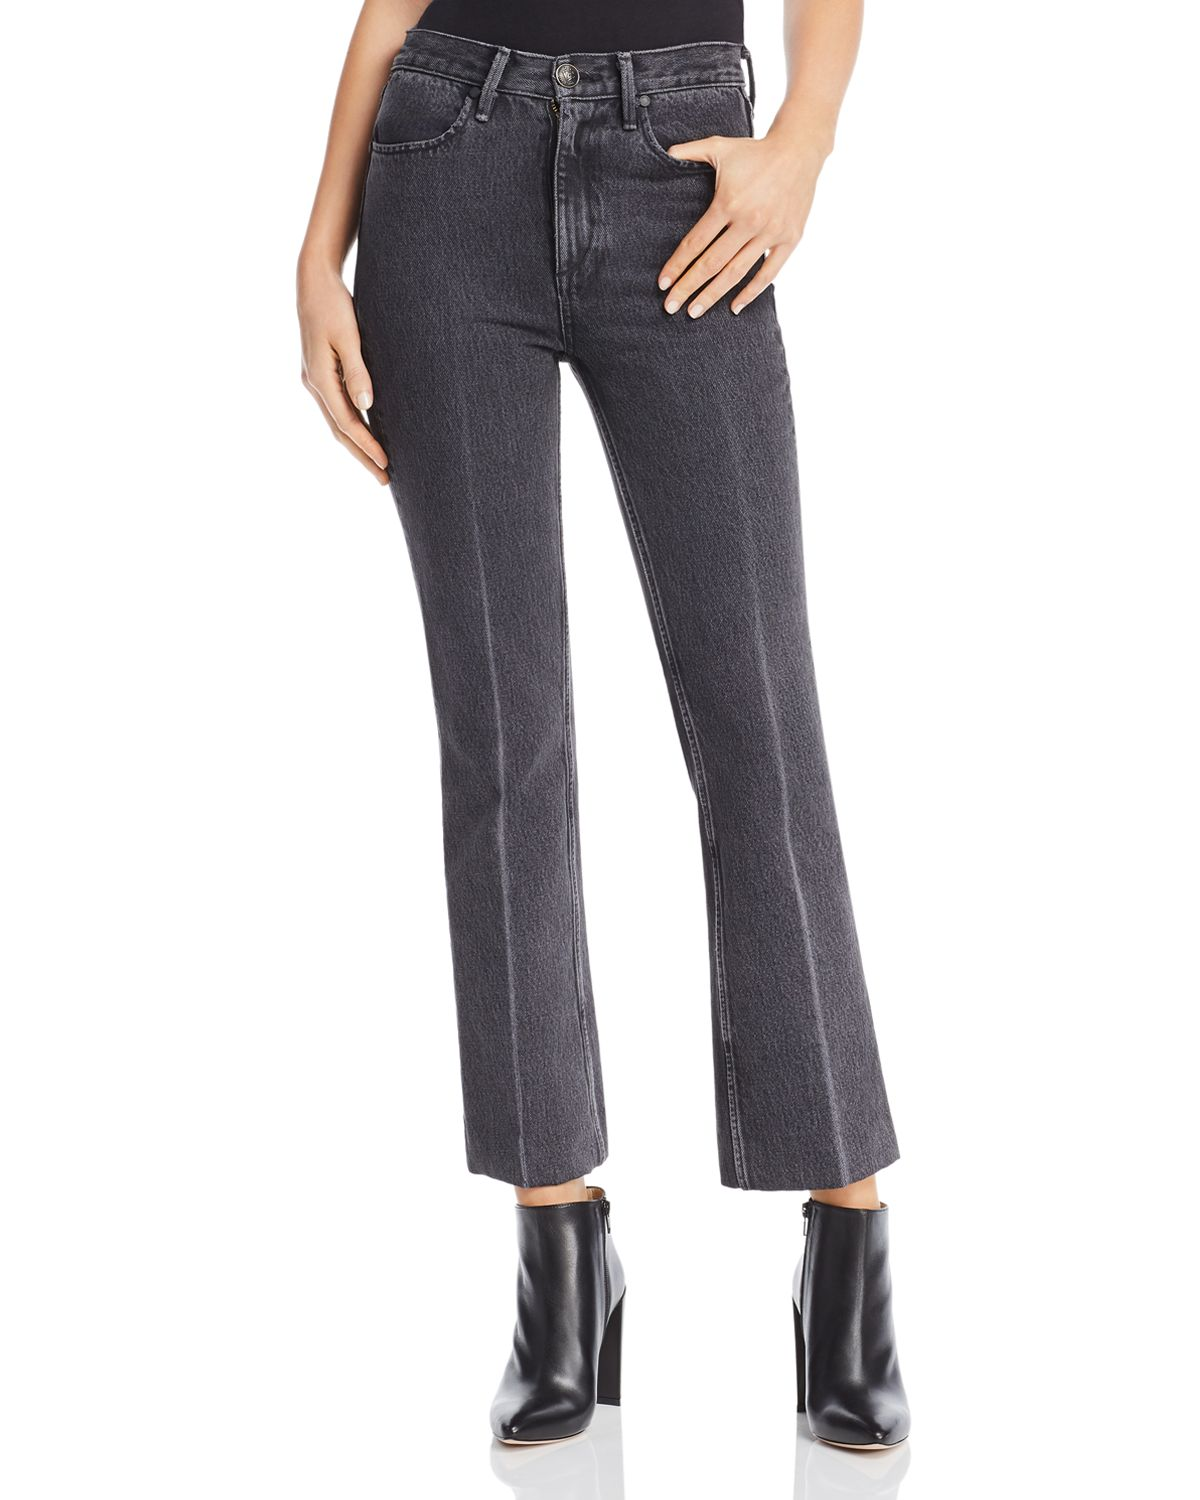 Dylan cropped trousers - Grey Rag & Bone